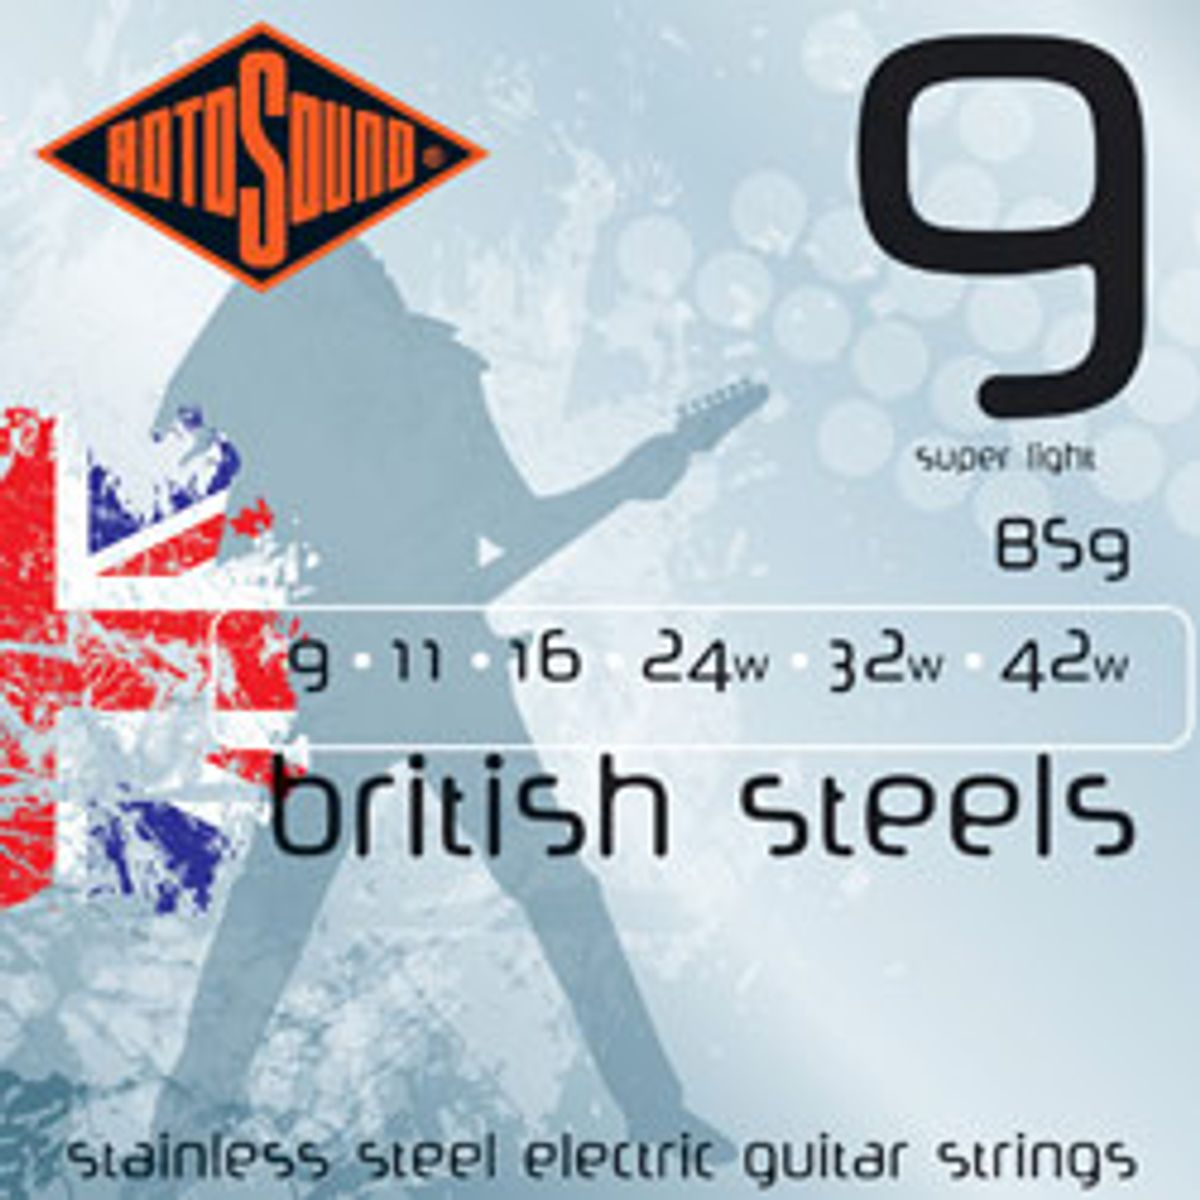 Rotosound Launches British Steel Strings